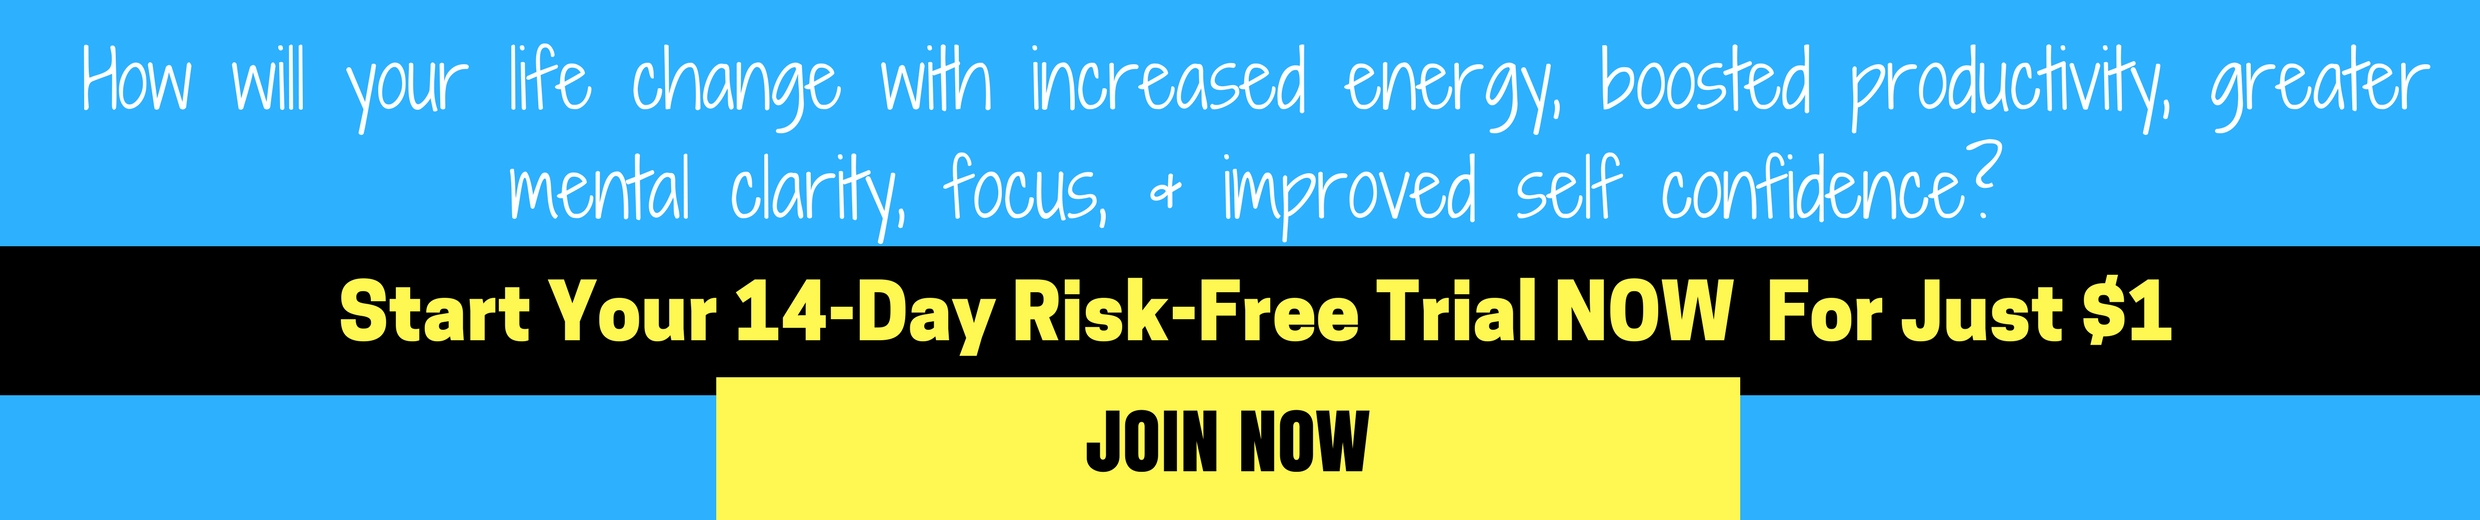 14 DAY RISK FREE TRIAL BANNER